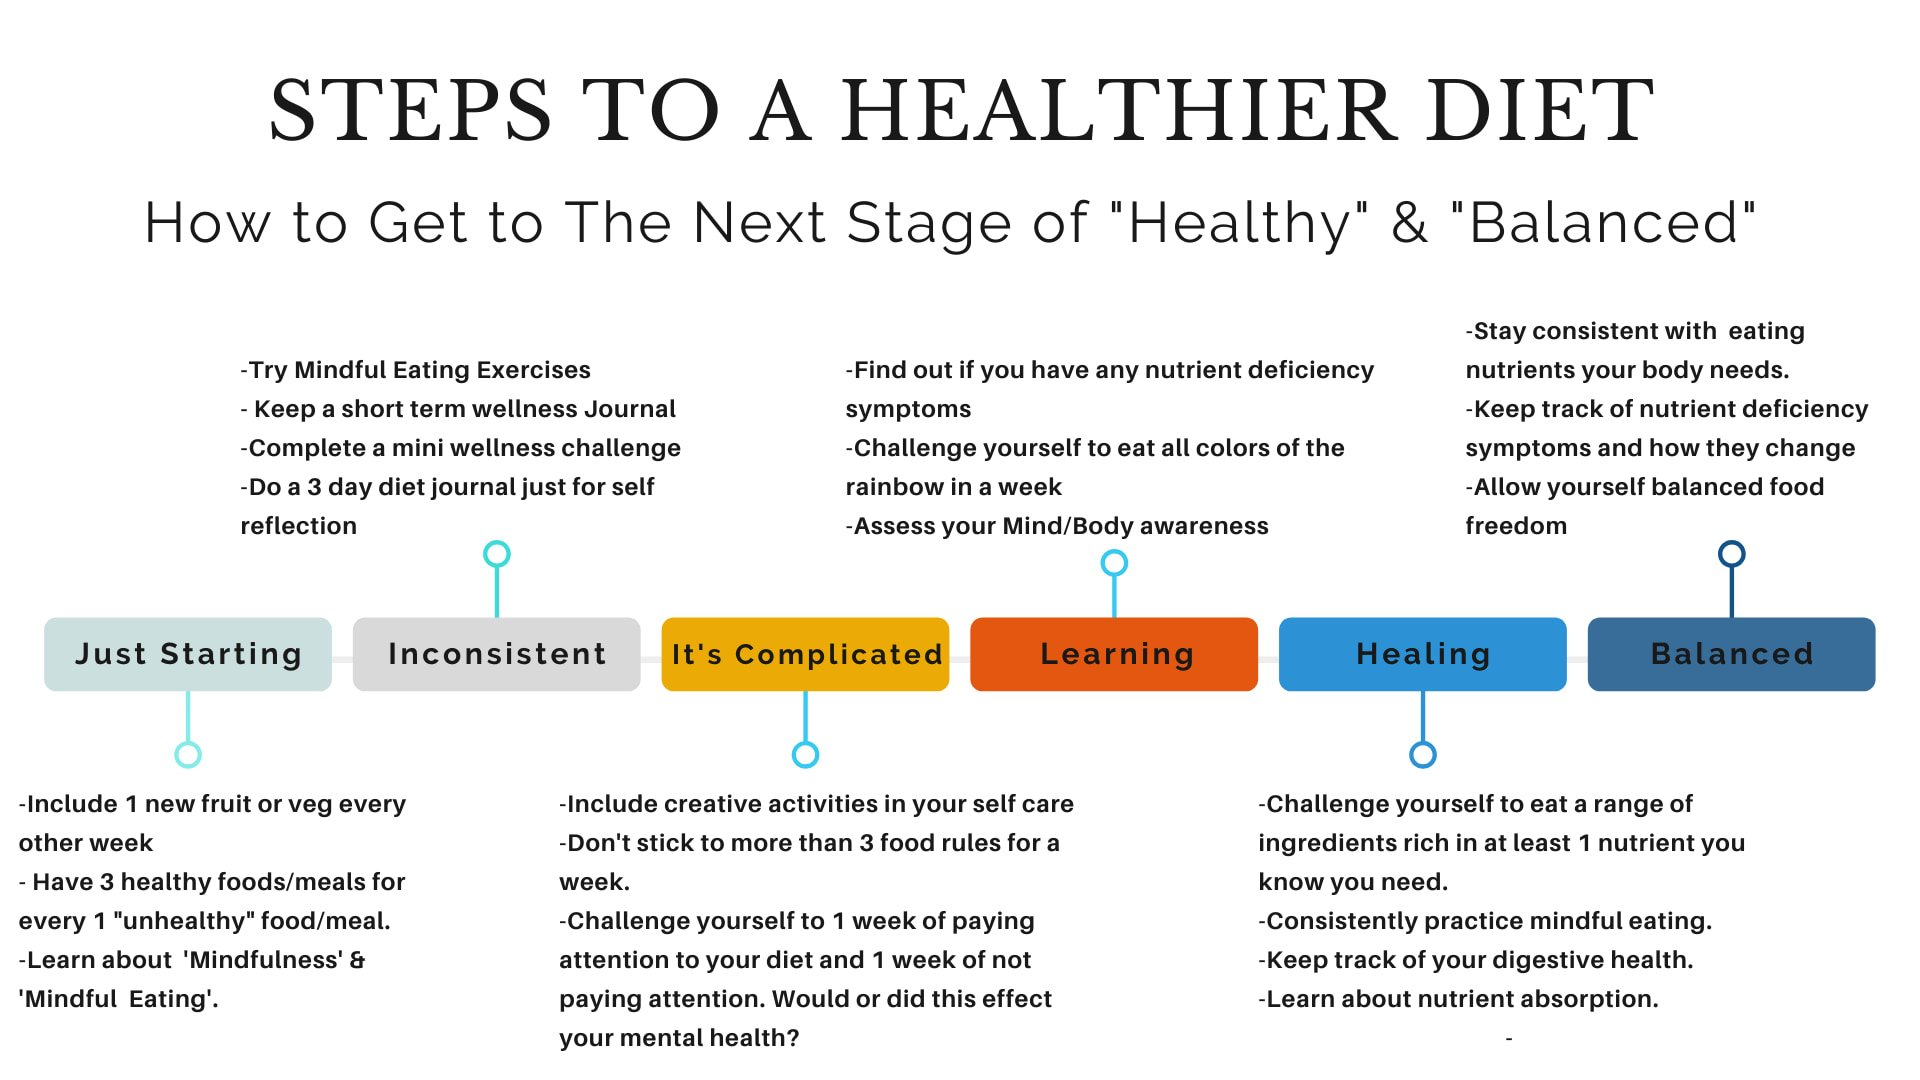 steps to a healthier diet